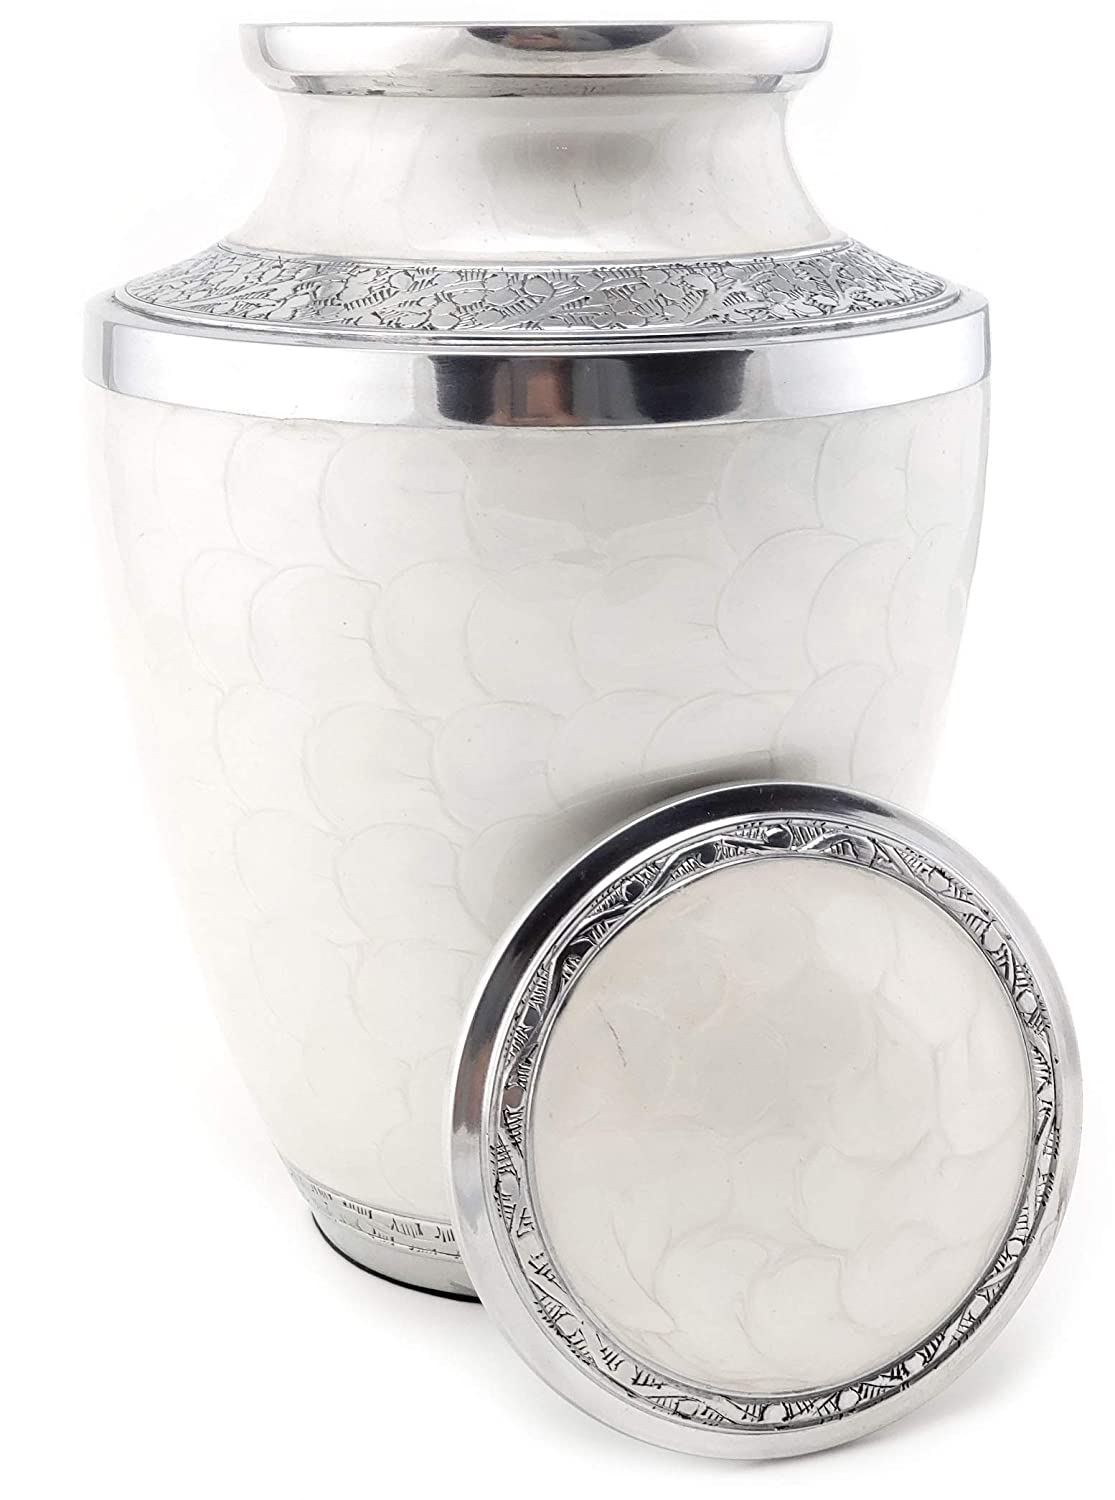 edenStar Cremation Urn with Unique Design – Adult Funeral Memorial Urn for Human Ashes Handmade Solid Handcrafted Engraved